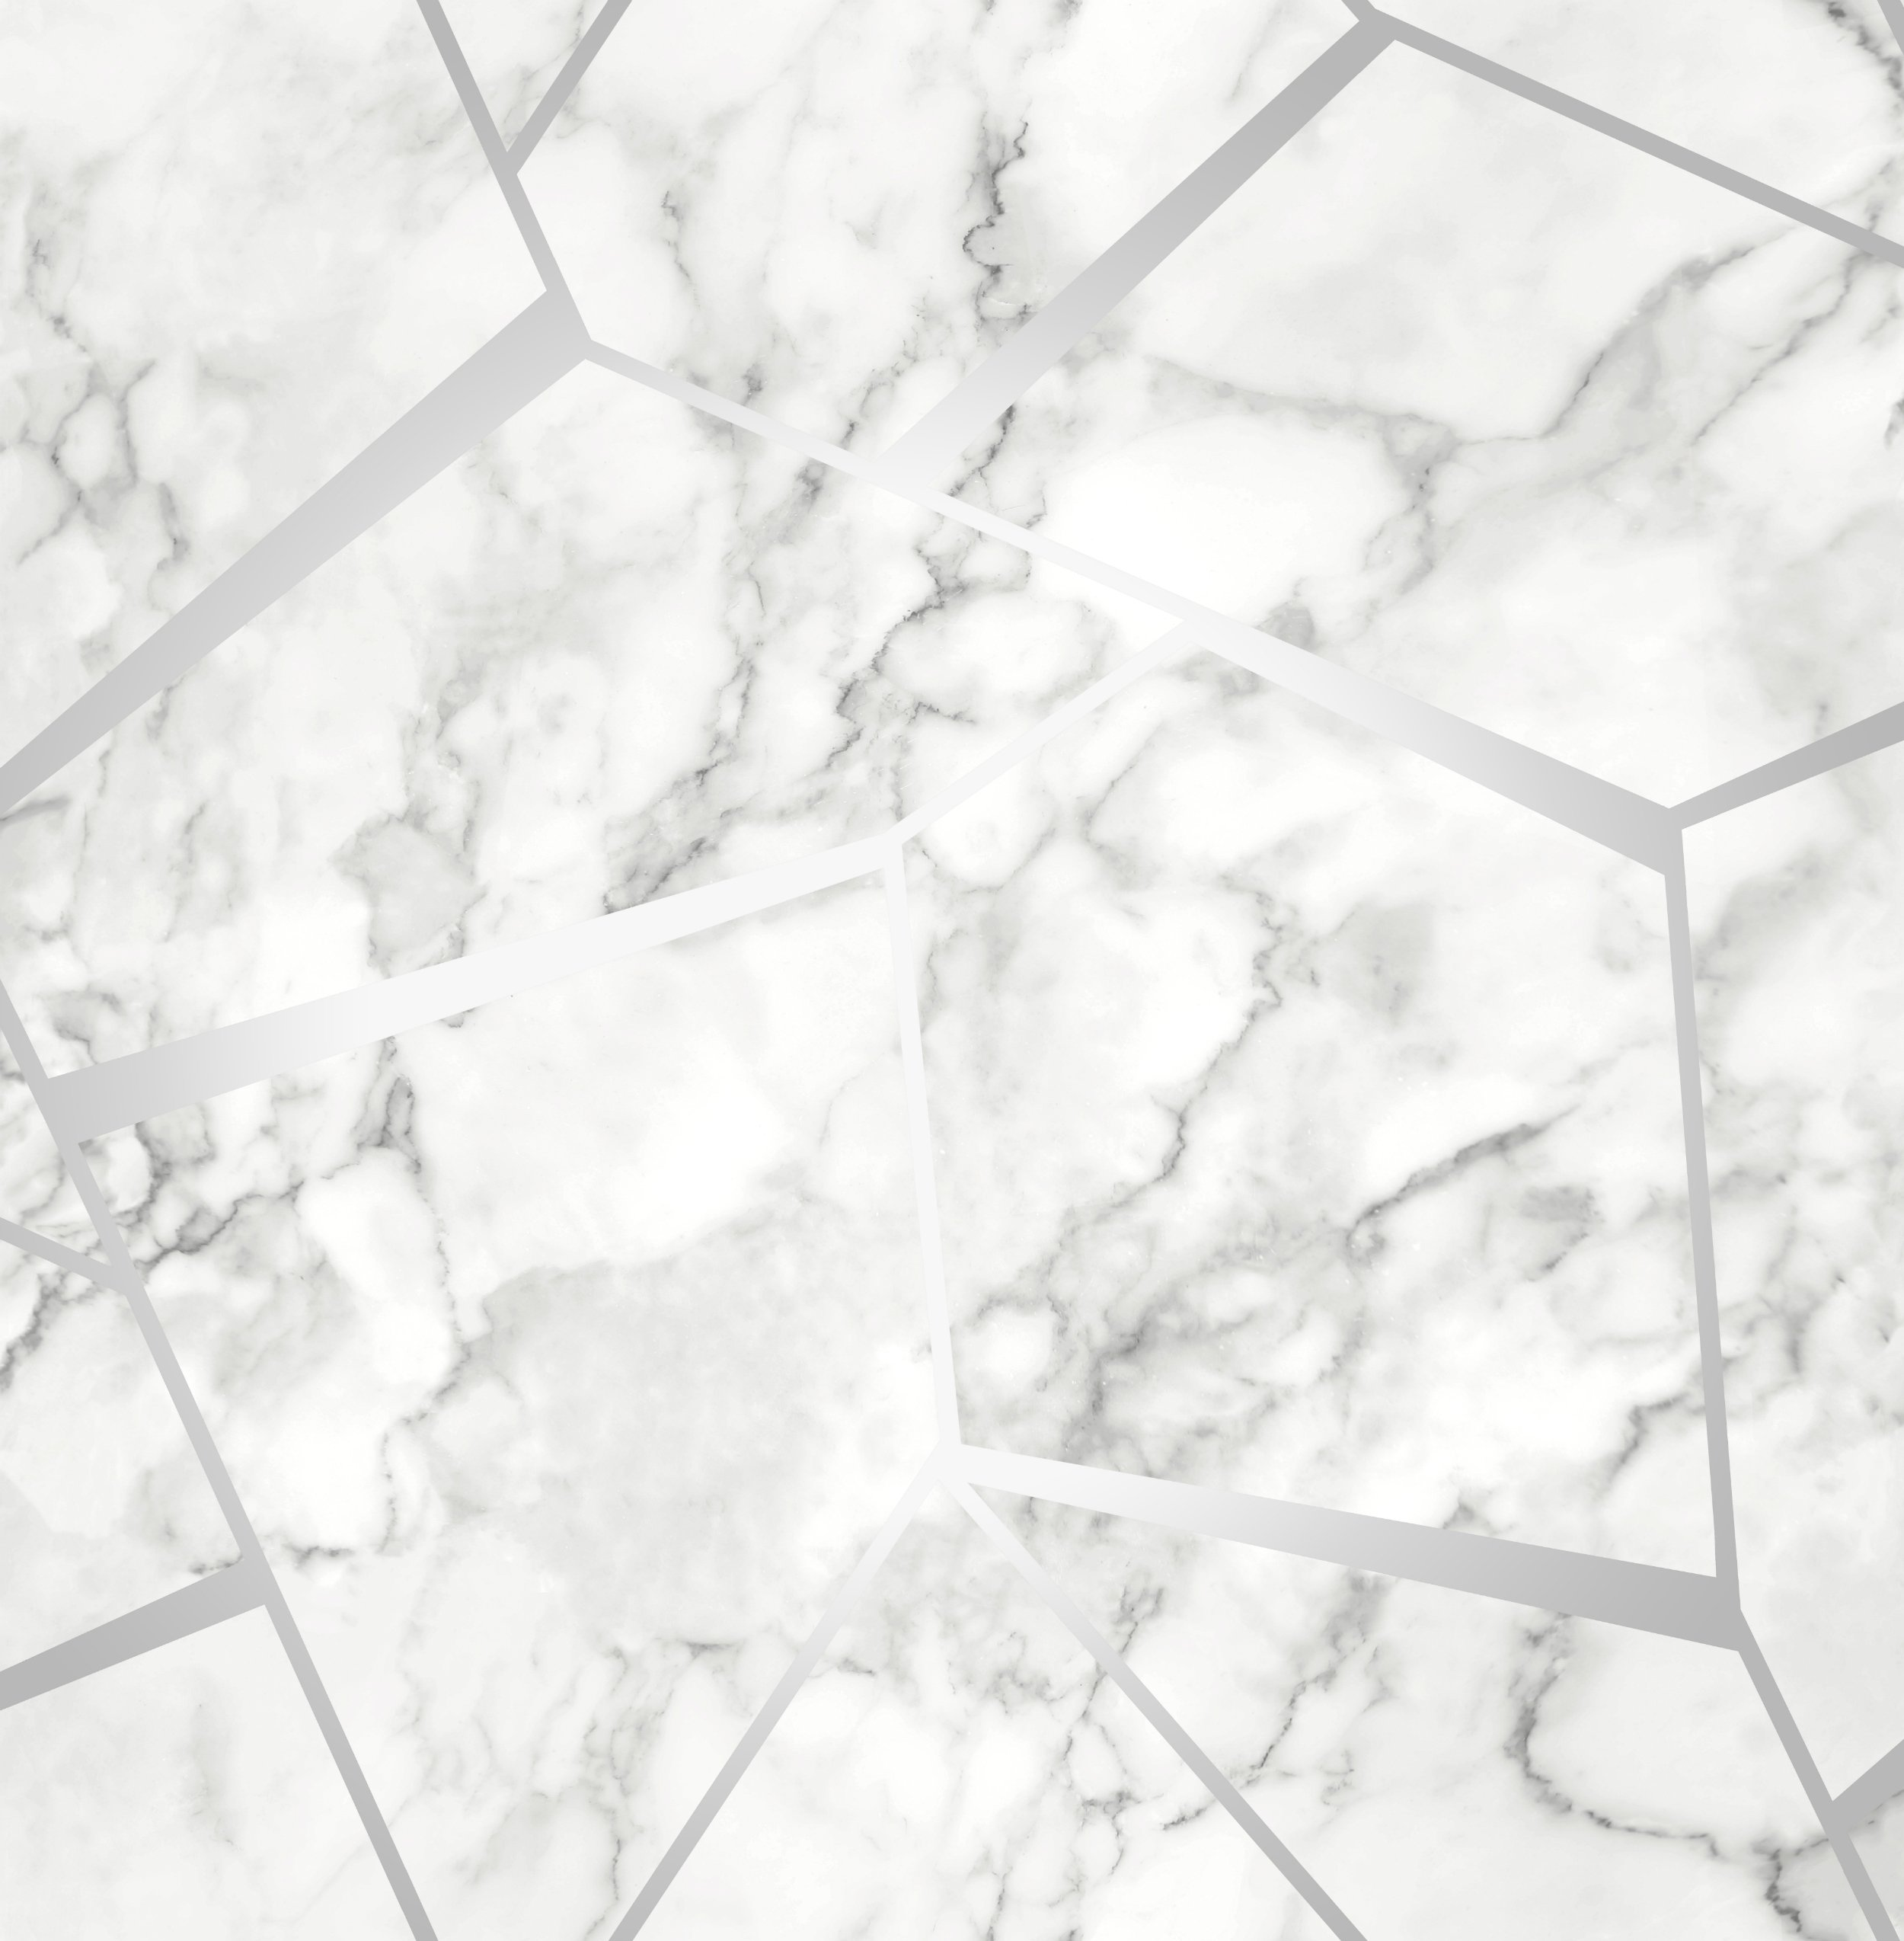 Top Wallpaper Marble Silver - FD42263-1-2  You Should Have_481239.jpg